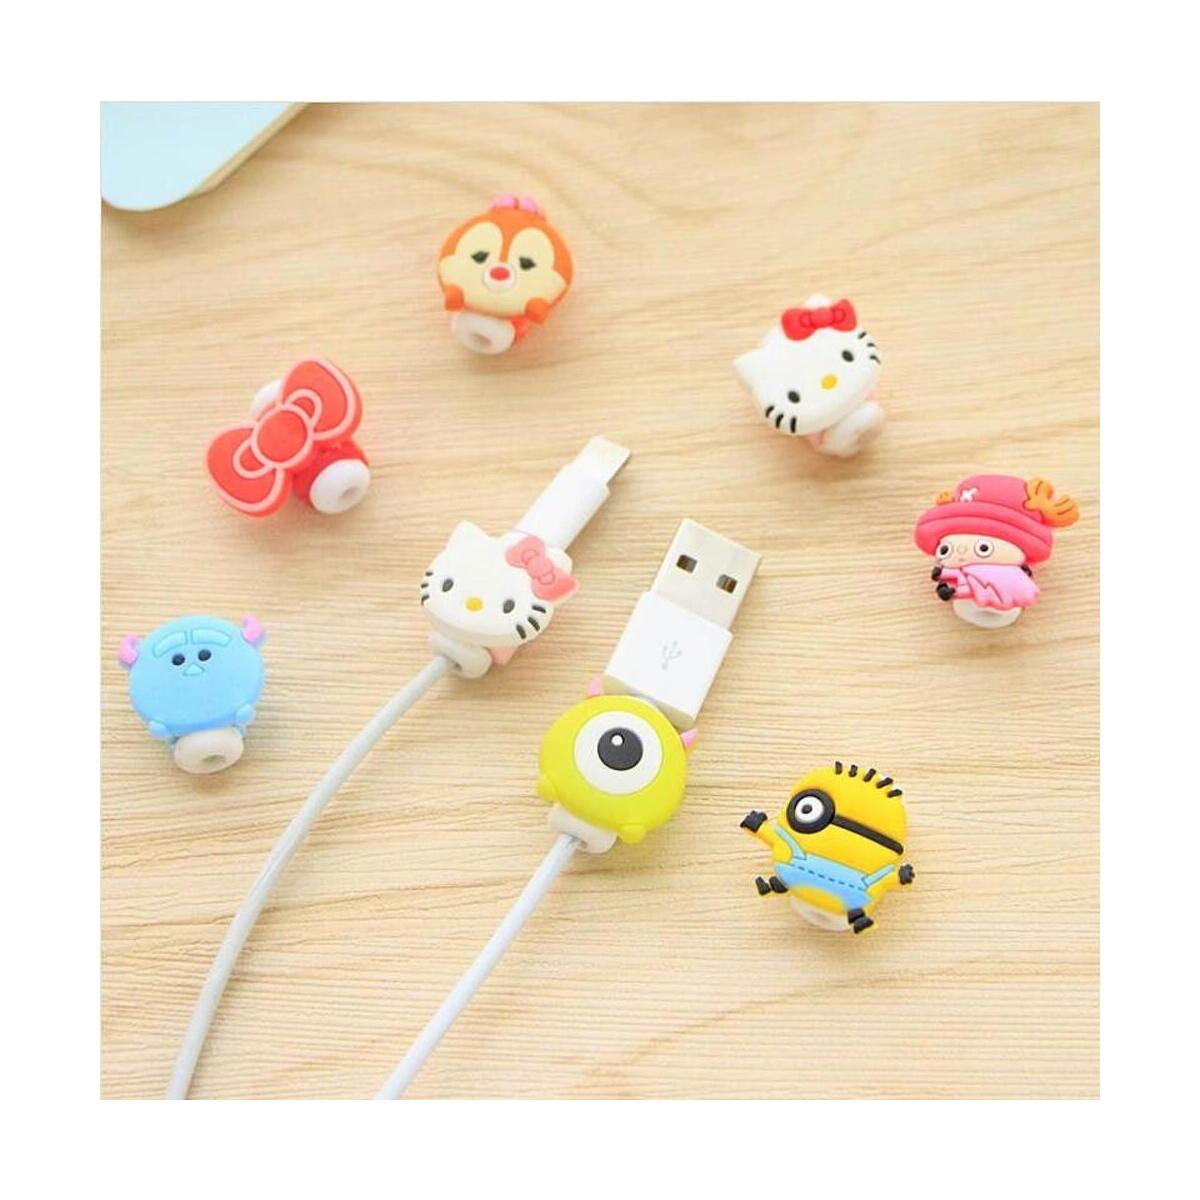 Charging Cable Protector Cute Cord Protection Cover Organizer Wire